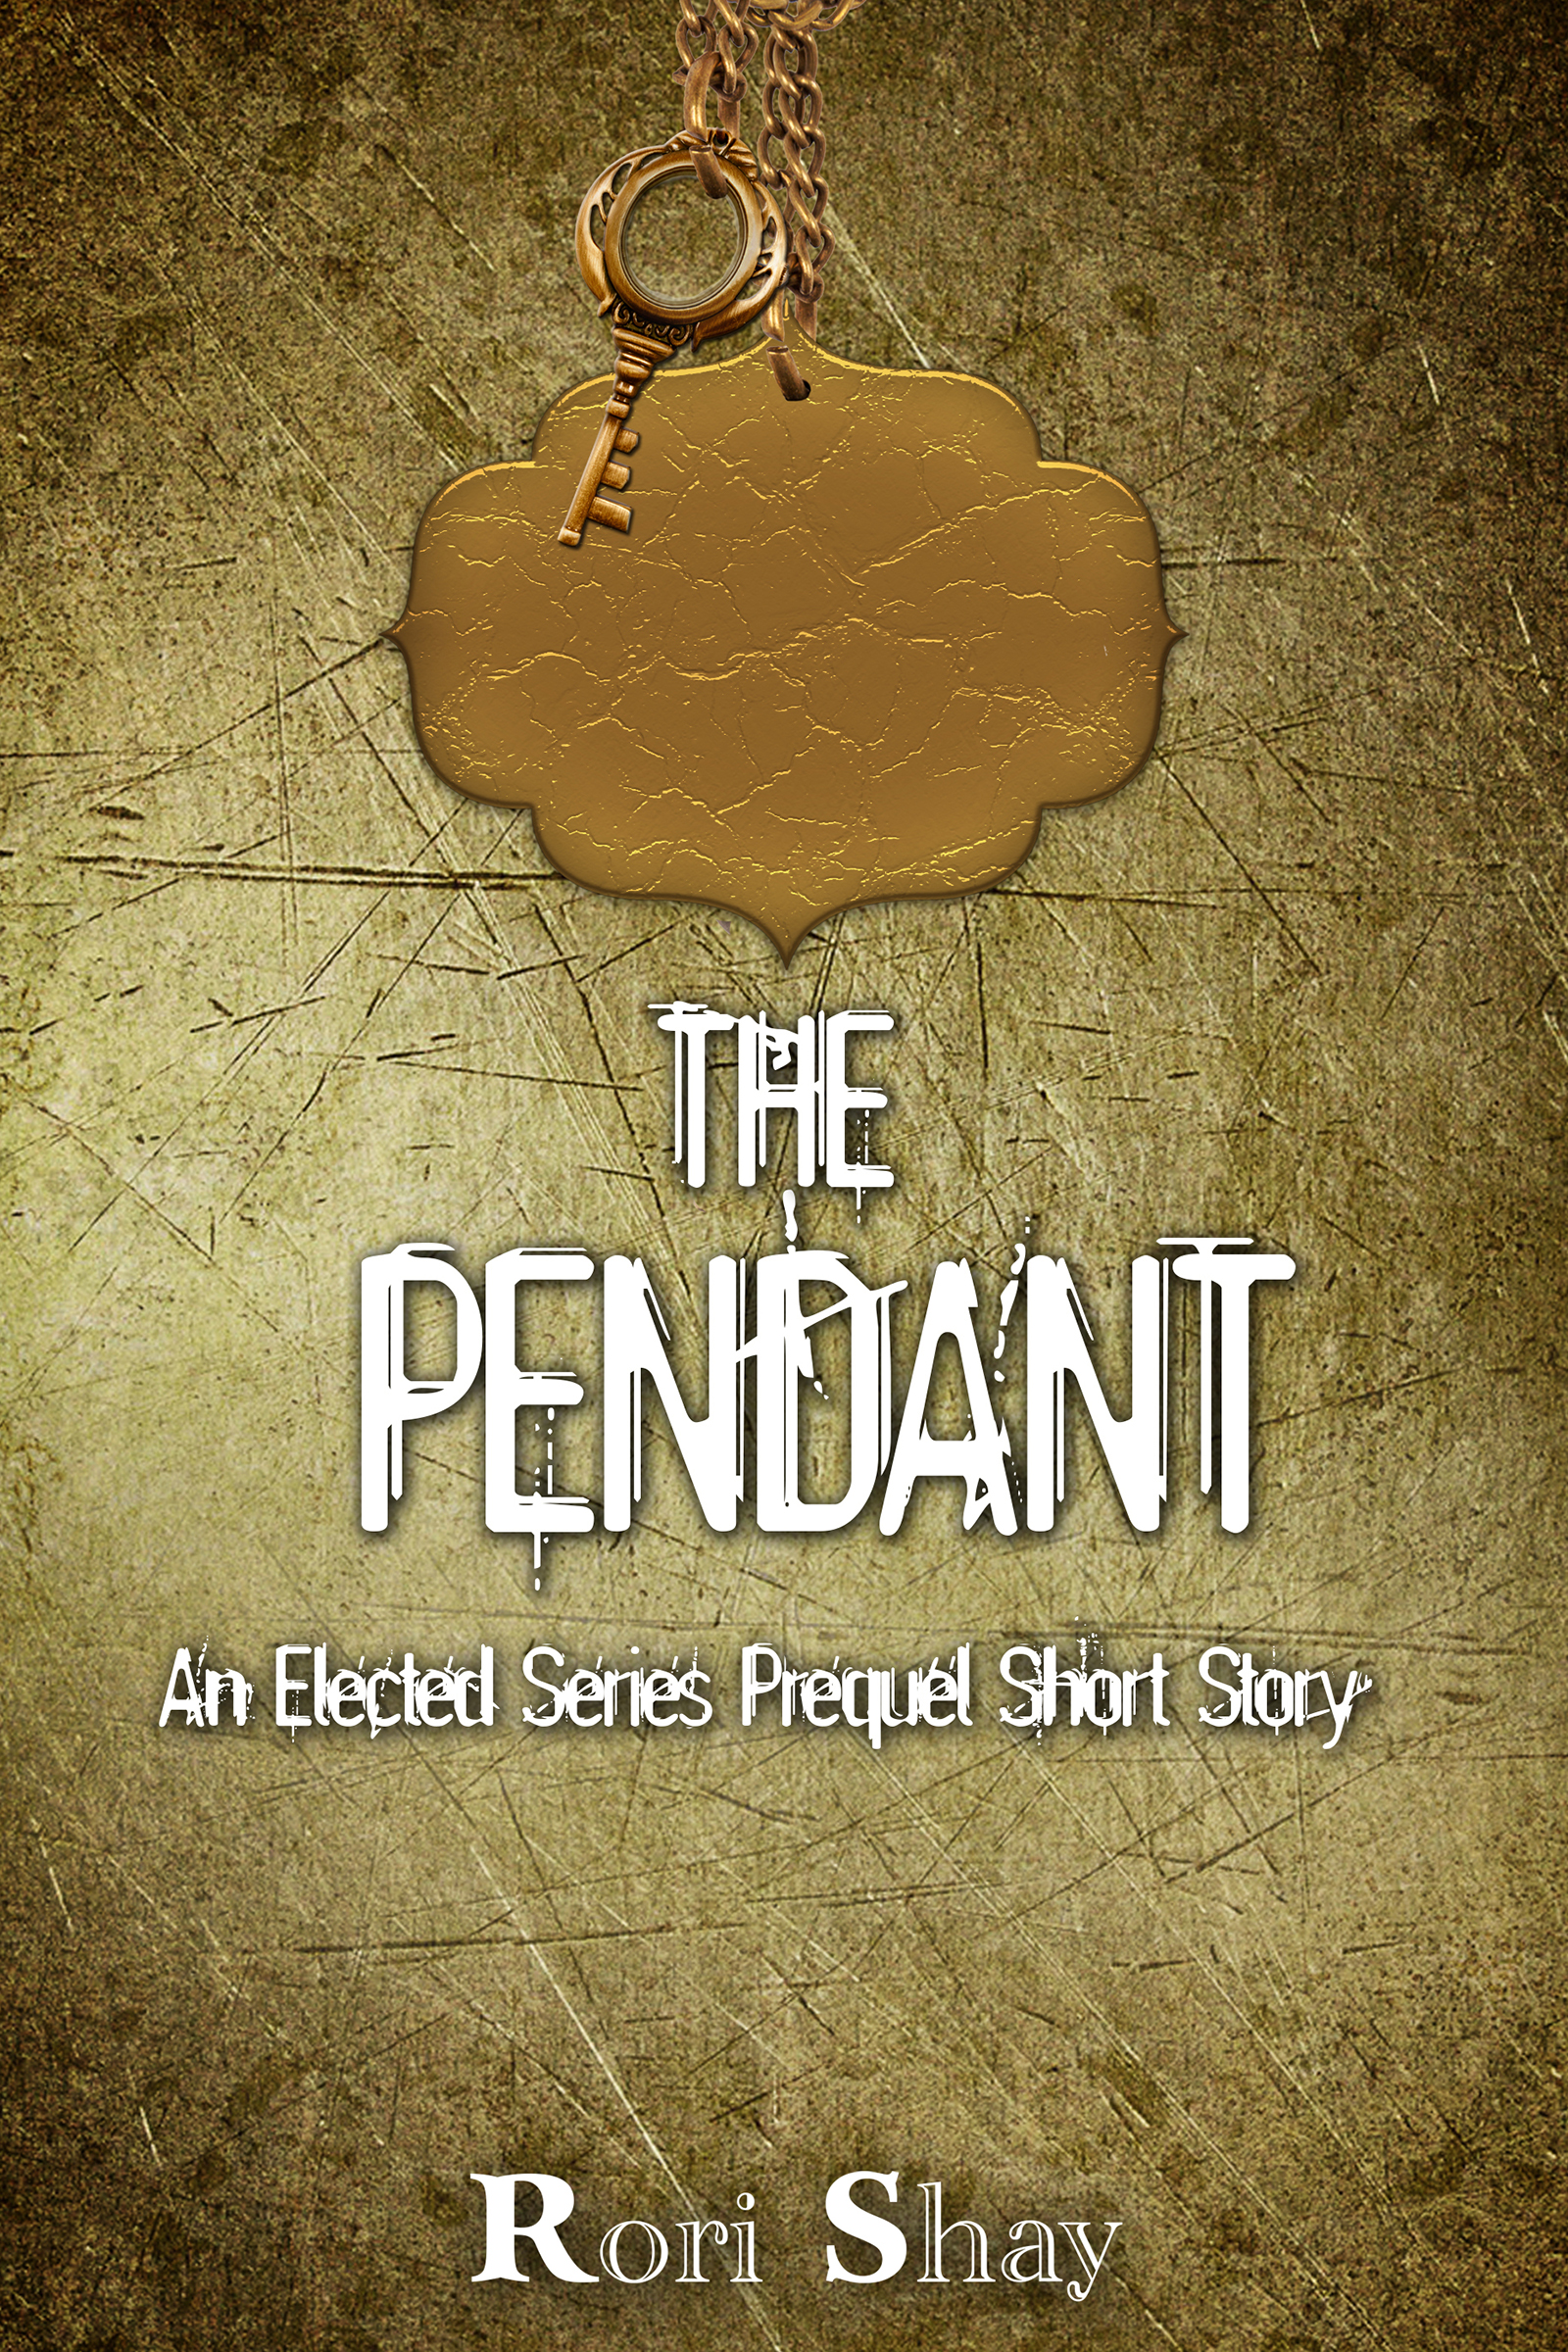 THE PENDANT (prequel short story to ELECTED) out now in time for Xmas!